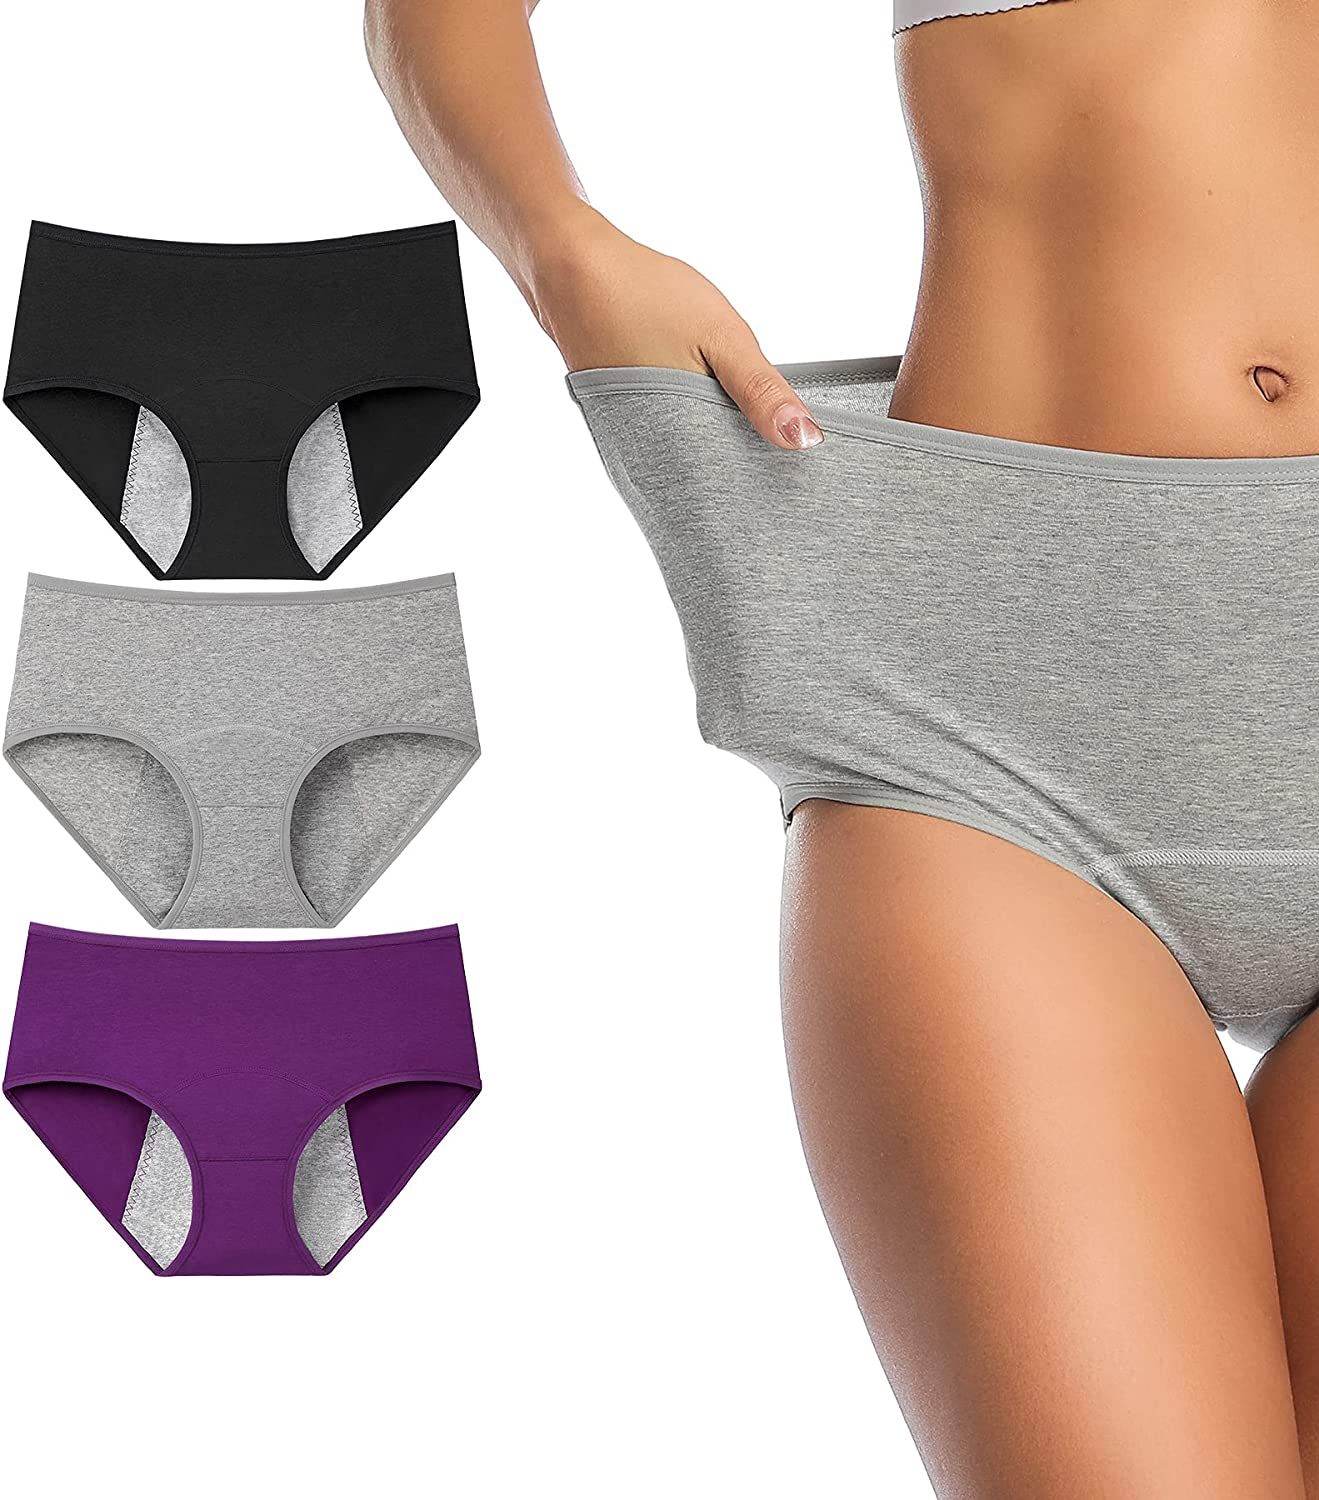 Women's High Waisted Cotton NEW before selling Underwear fo Panties Breathable Super intense SALE Soft